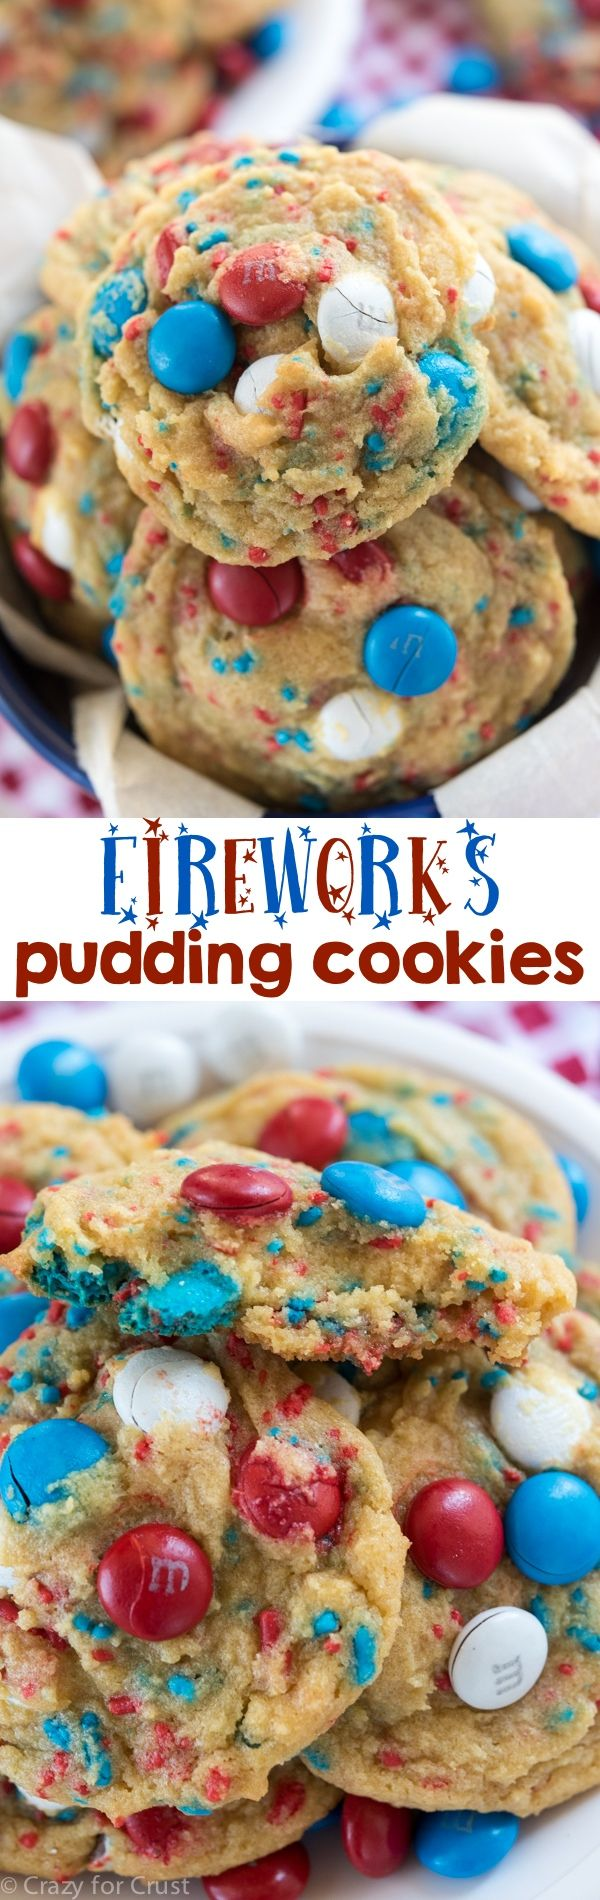 Fireworks Pudding Cookies - an easy brown sugar pudding cookie full of red, white, and blue! Perfect cookie recipe for the 4th of July.